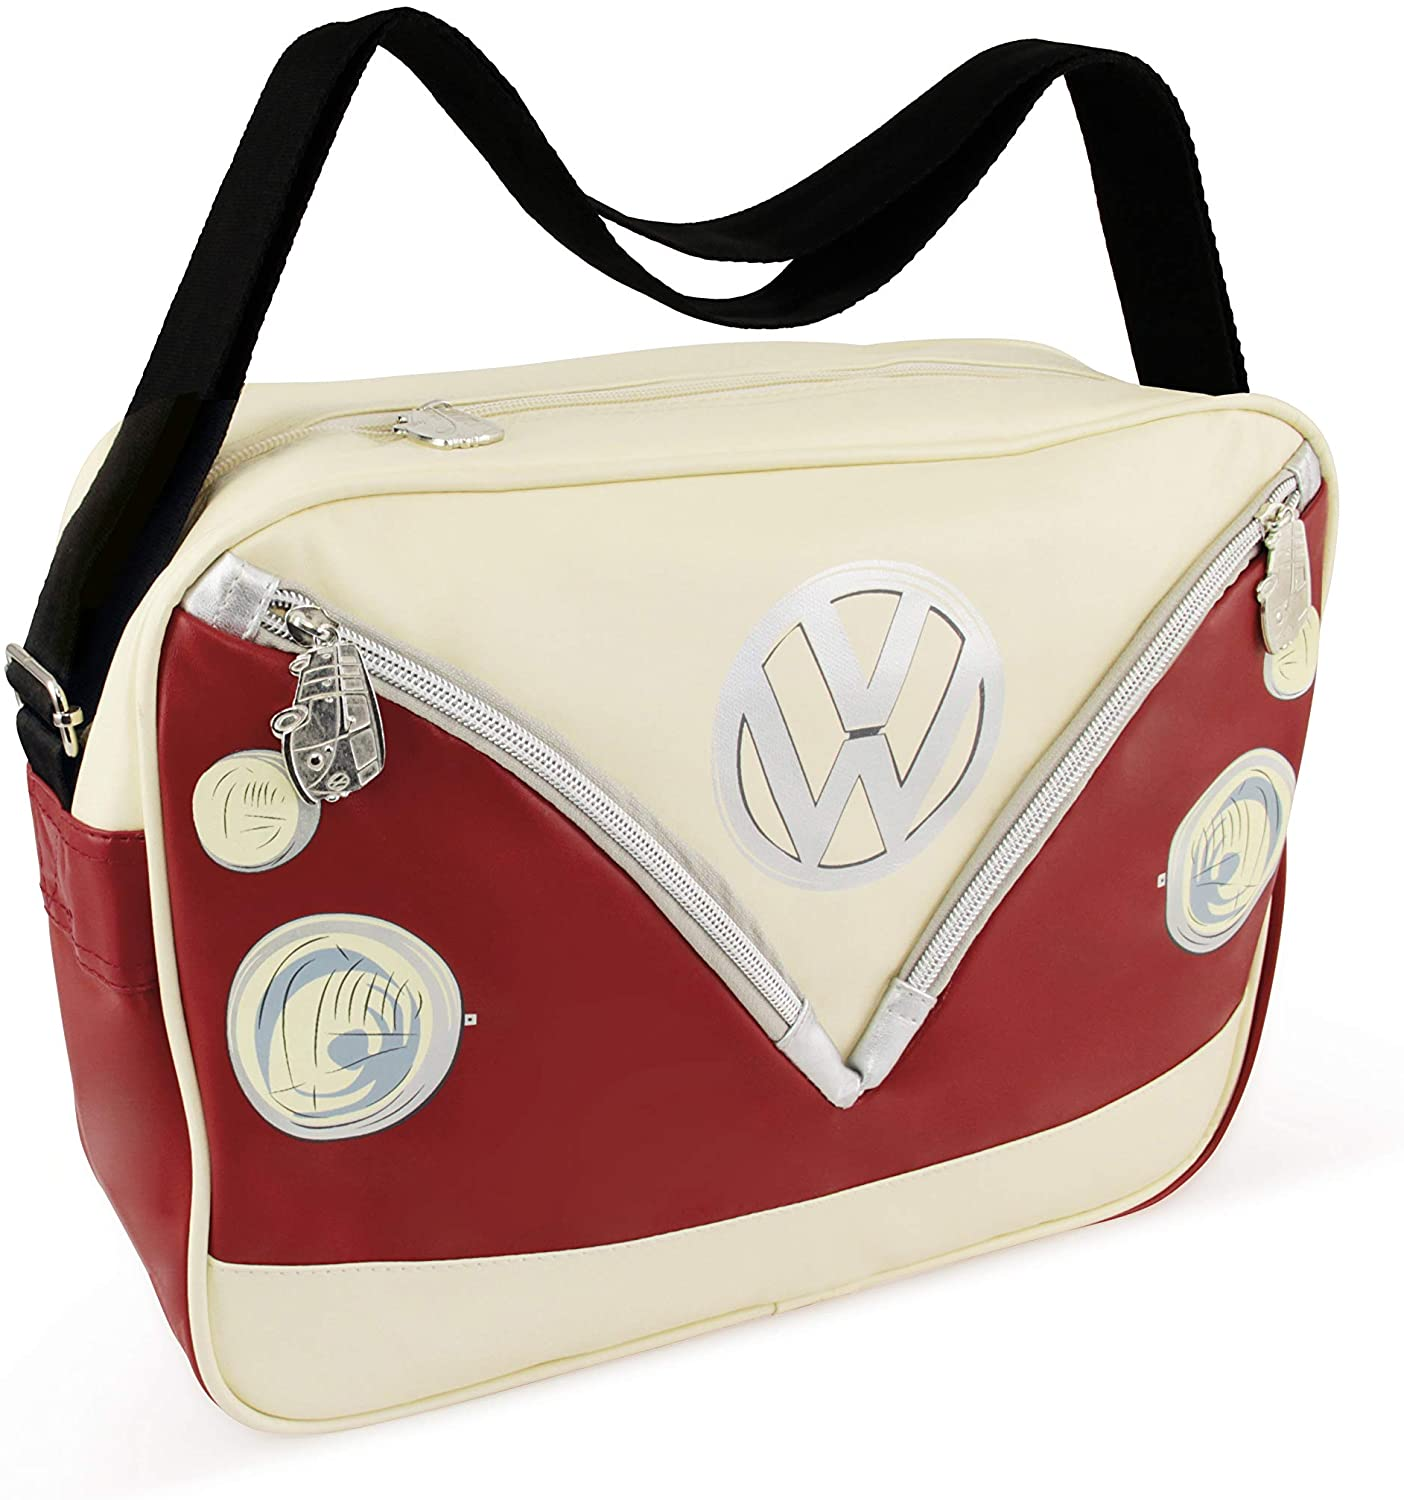 BRISA VW Collection - Volkswagen Samba Bus T1 Camper Van Shoulder Bag (Red)